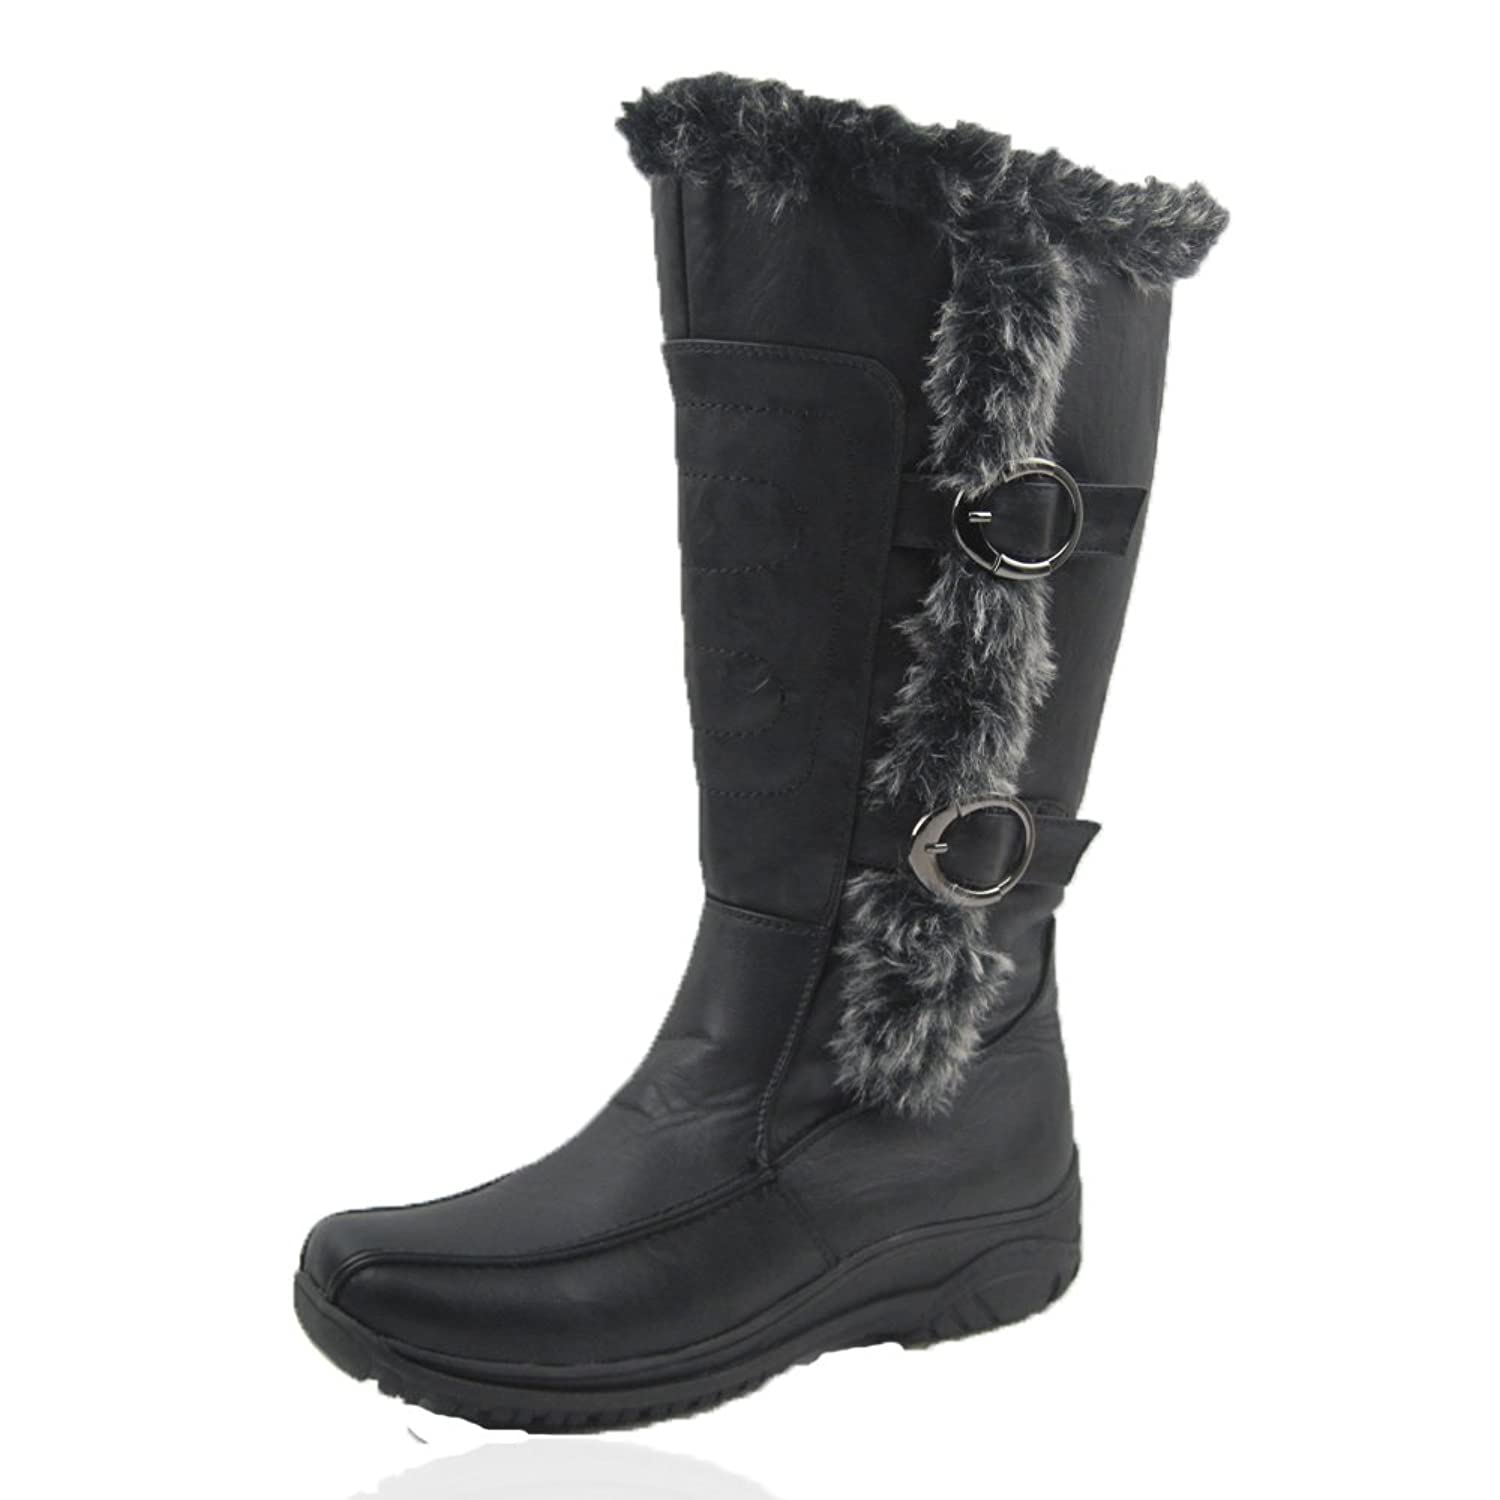 Comfy Moda Women's Winter Snow Boots Tina #6-12